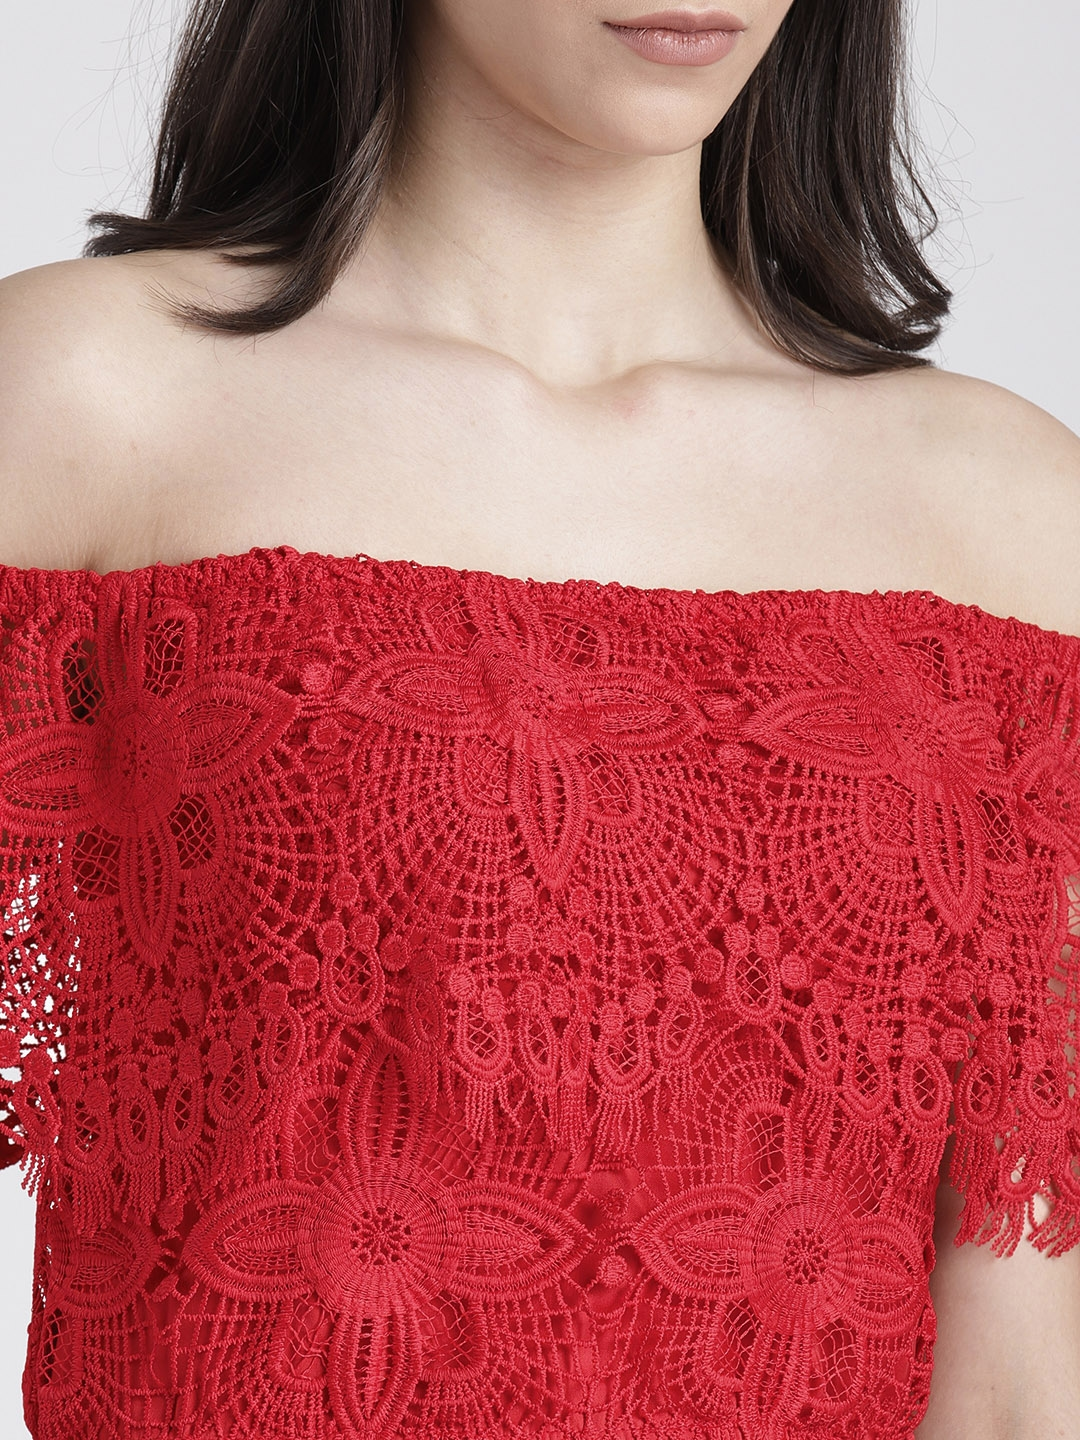 a3f12c08582b23 Buy Splash Women Red Lace Bardot CropTop - Tops for Women 6991975 ...